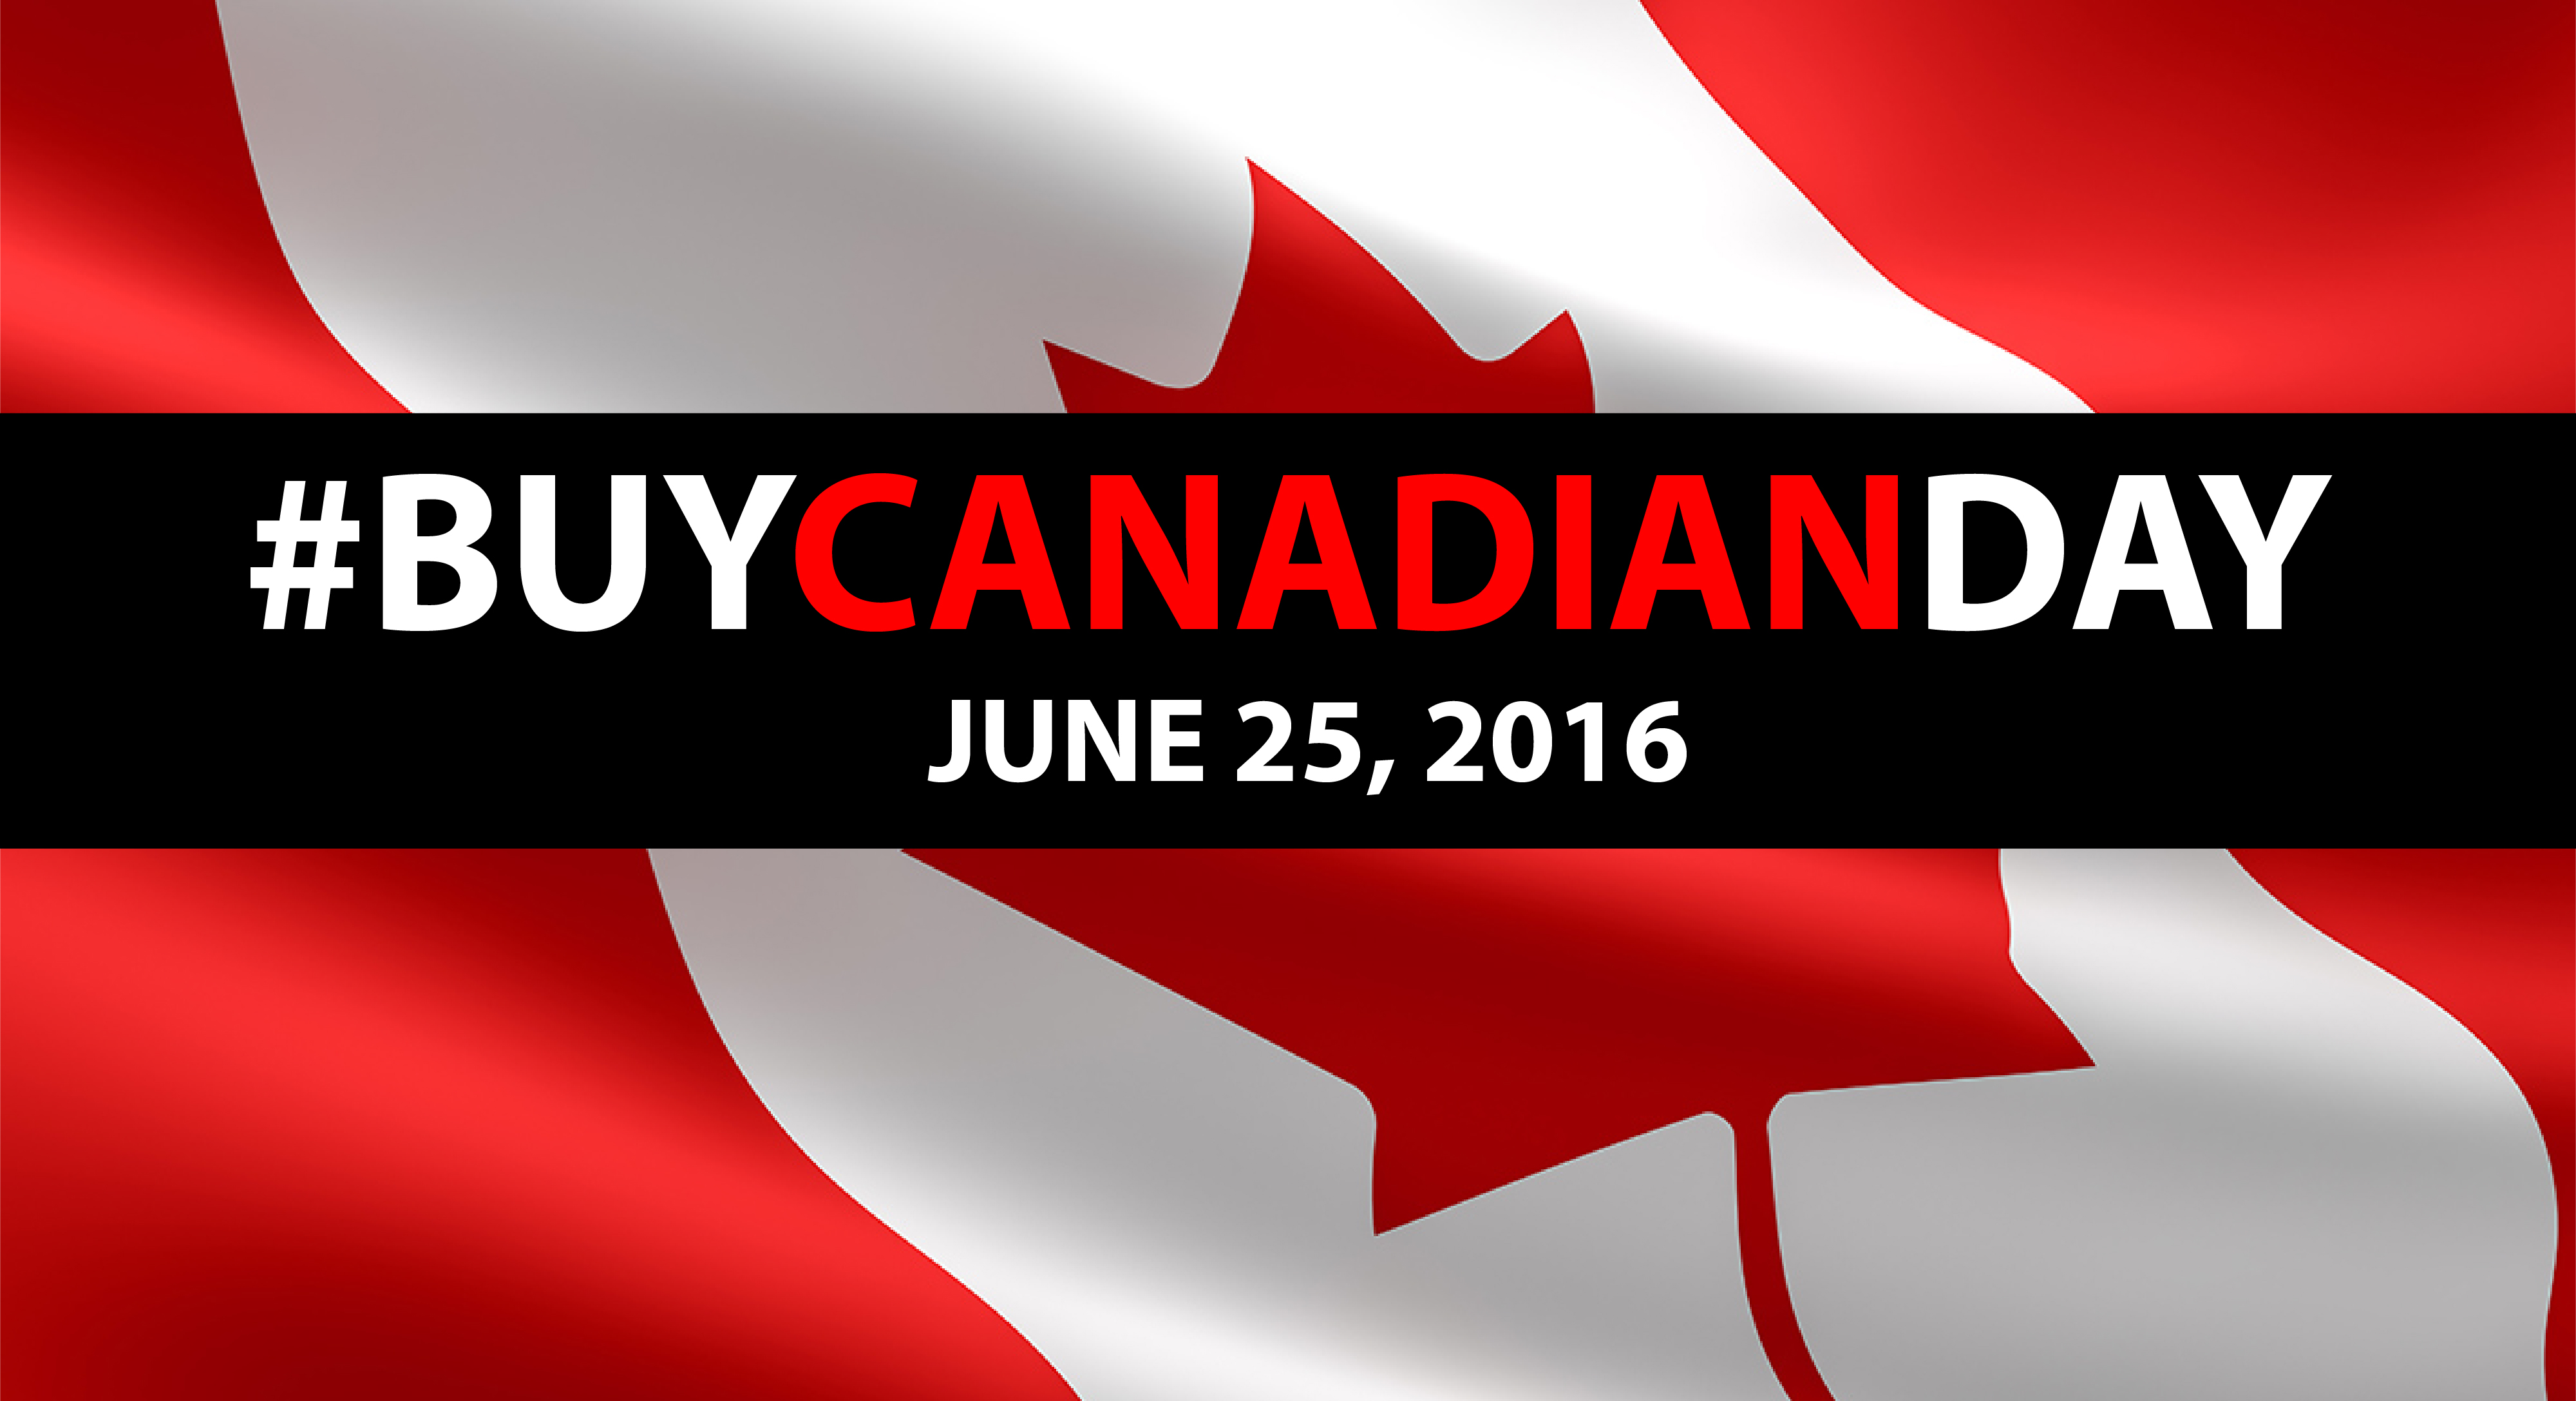 Buy Canadian Day – An excellent initiative from buycanadianfirst.ca